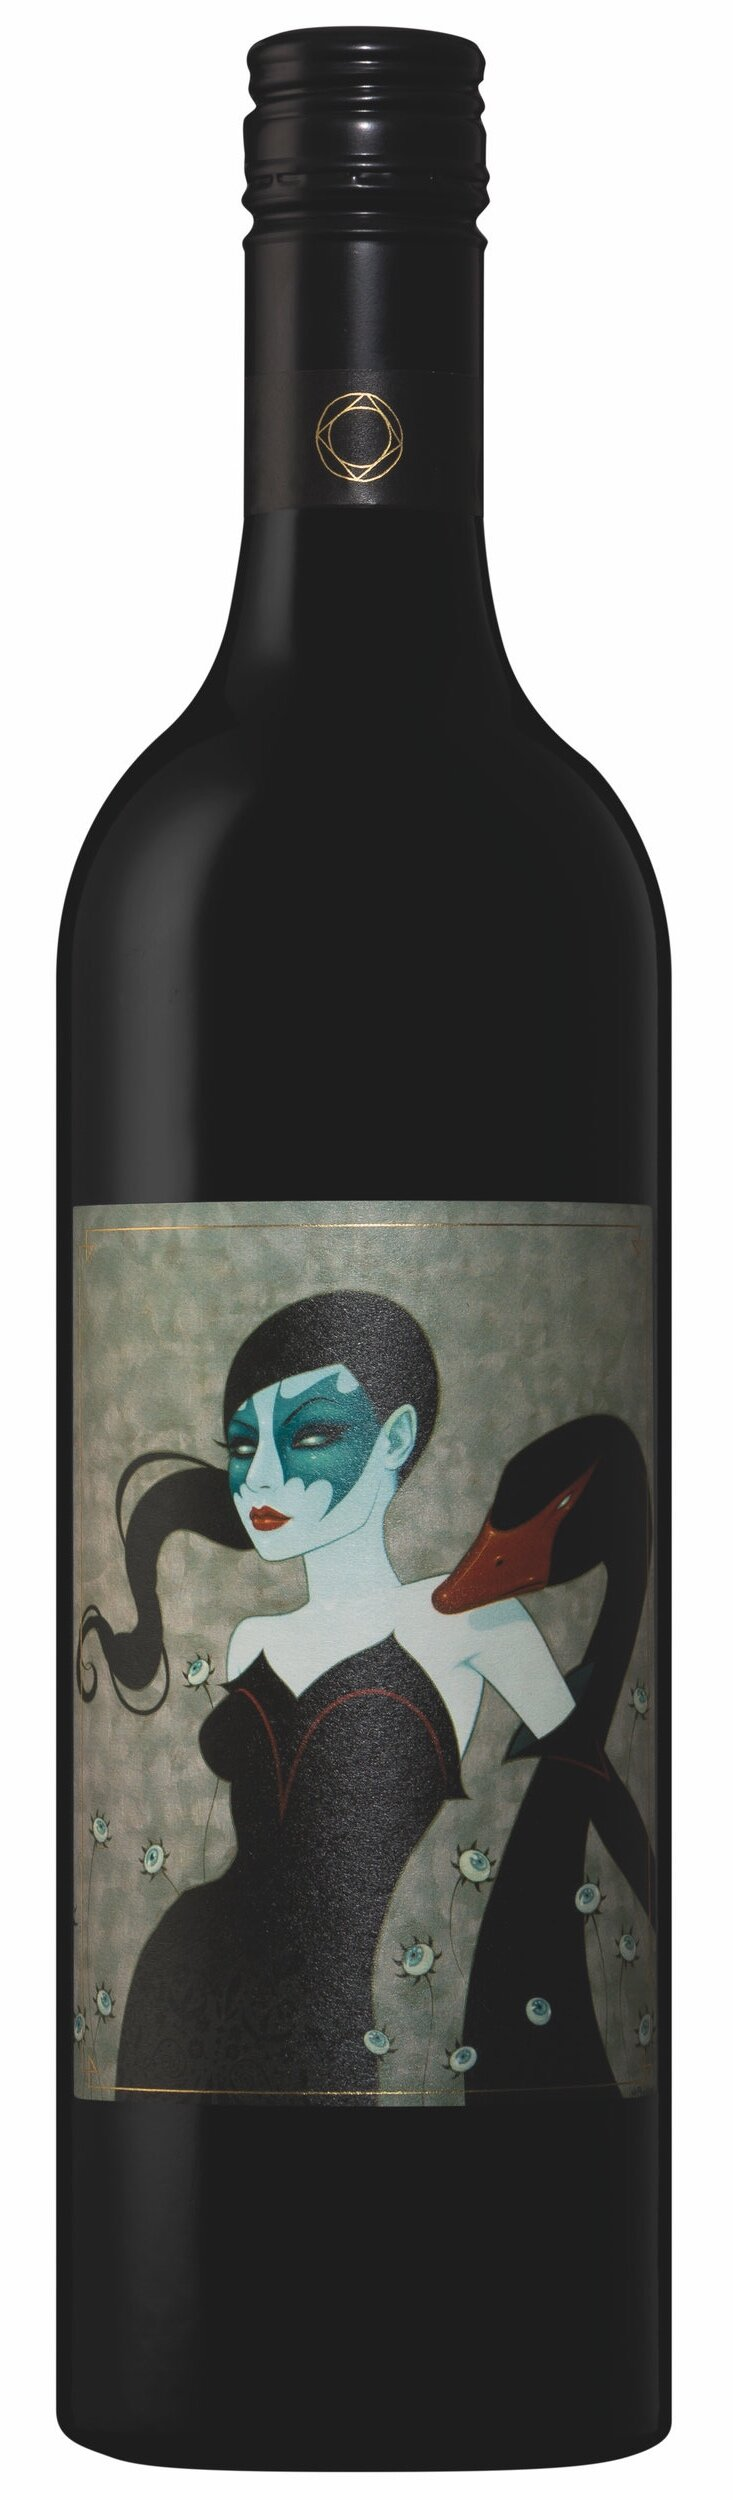 ADELINA SHIRAZ アデリーナ シラーズ  エデンヴァレース プリングファーム  ¥ 6,410 2017, 750ml  James Suckling 96  ベストオーストラリアワインに第32位ランクイン。原始的な方法にフォーカスし、口当たりは流れるように長く、また味わいは何層にも重なっていて魅力的、Adelinaのスタイルが絶妙に現れています。 ダークプラム、ブラックベリー、ダークチェリーの香りと味わいが、活き活きとしています。 口当たりには慎重に捉えられた緊張感が感じられ、それは的確な判断での収穫と醸造に依るところでしょう。お見事。  オーガニック 1908 vineyard, Hand Picked, selected yeast, after 52 days fruit is de-stemmed and mildly crushed into large format french oak for malo and maturation (10 months)  Pristine focus and appeal with a very fluid, long and layered palate, delivering admirably in the Adelina style of restrained power. The aromas and flavors of dark plums, blackberries and dark cherries are vibrant and engaging. There's a sense of carefully captured tension on the palate that equates to well-judged picking and vinification. Superb.  VINEYARD: Adelina Block 4  BASIC VITI INFO: Vines of about 100 years old, beset red sand, mild clay, slate and limestone on a clay base.  WINEMAKING: Hand picked, destemmed and lightly crushed (retaining about 50% whole berries). One ferment on skins for 22 days, the other 42 days. Pressed to neutral 700l French oak for 9 months. 1752 bottles produced.